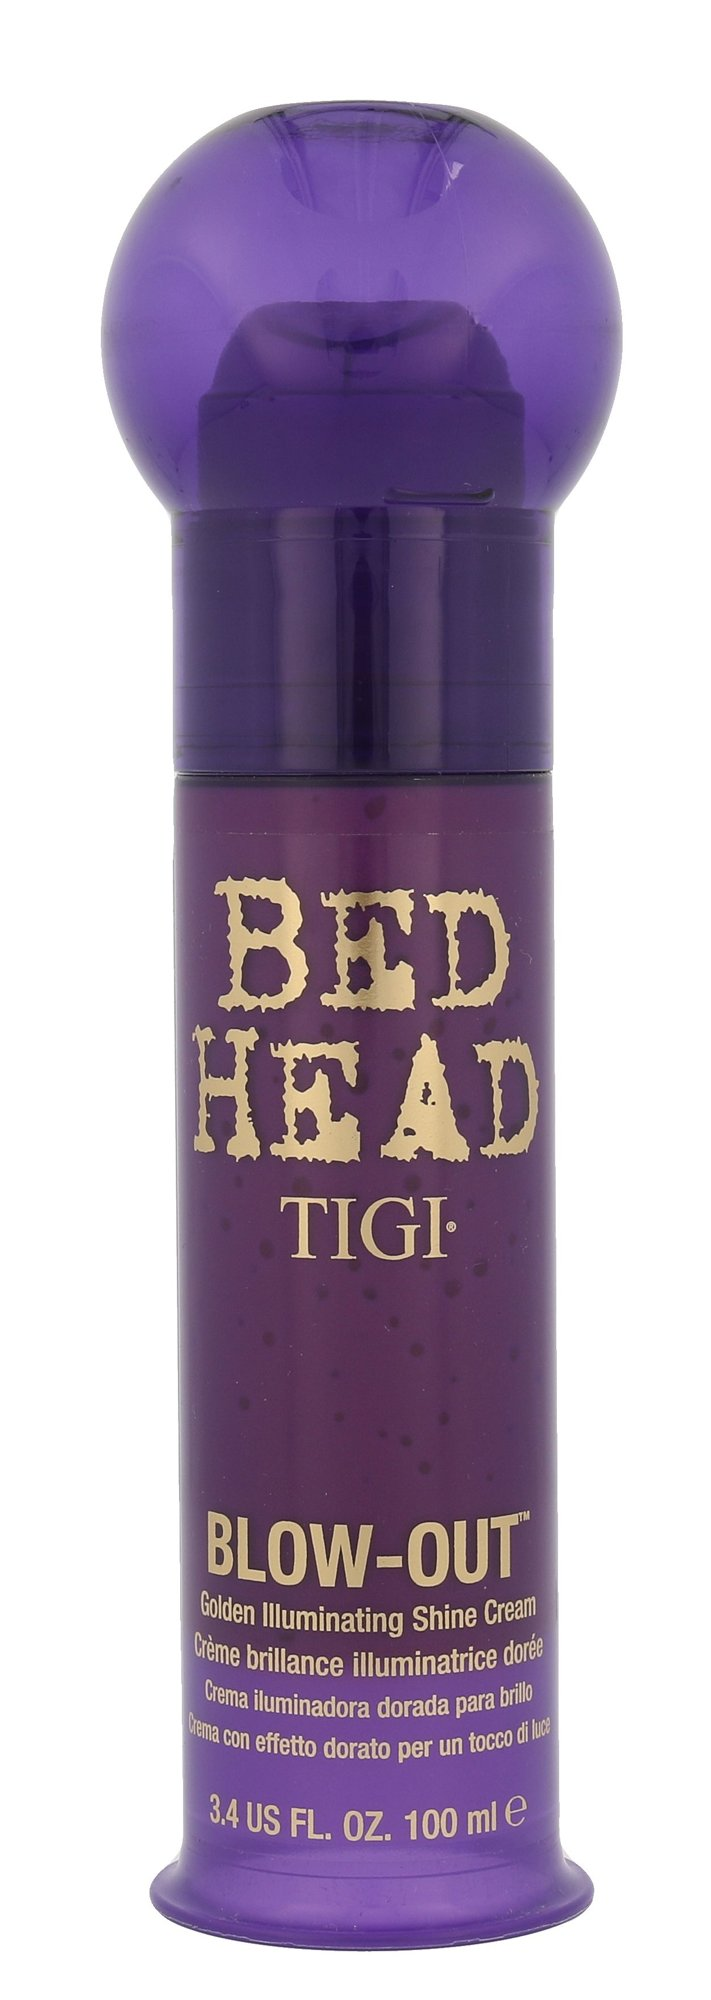 Tigi Bed Head Blow-Out Cosmetic 100ml